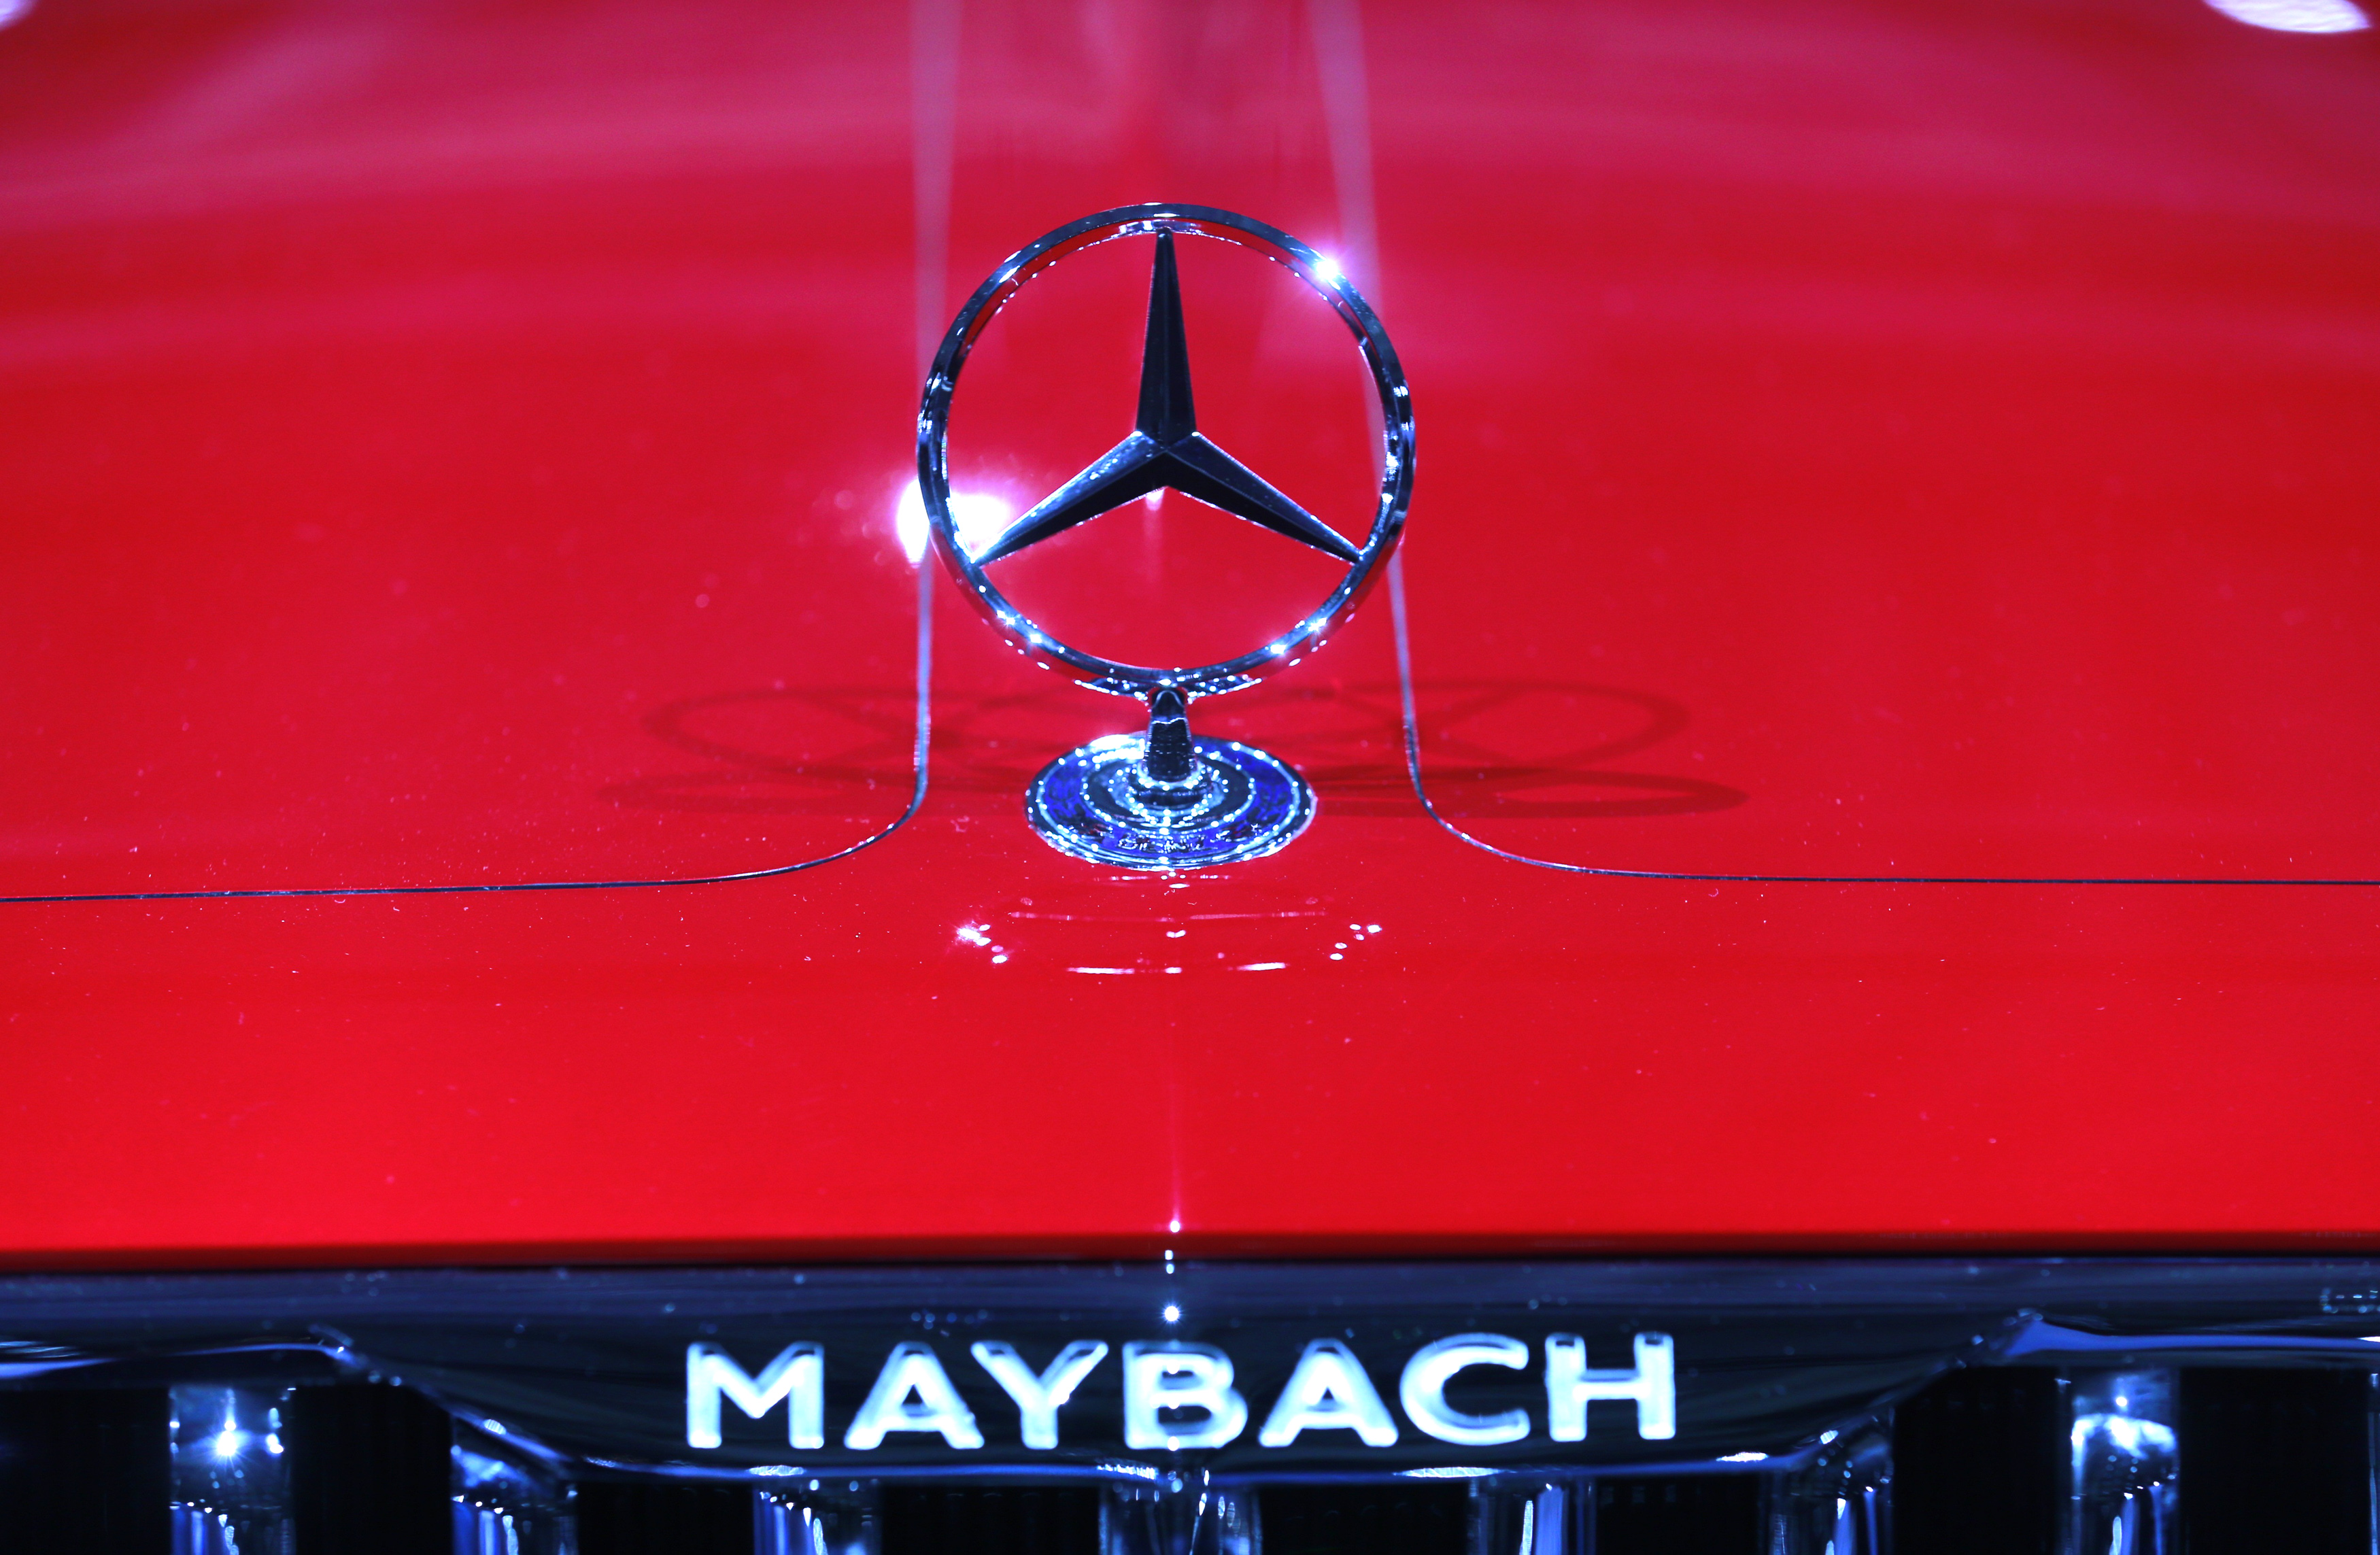 A Mercedes sign is seen on the Mercedes Maybach 6 car before the Daimler annual shareholder meeting in Berlin